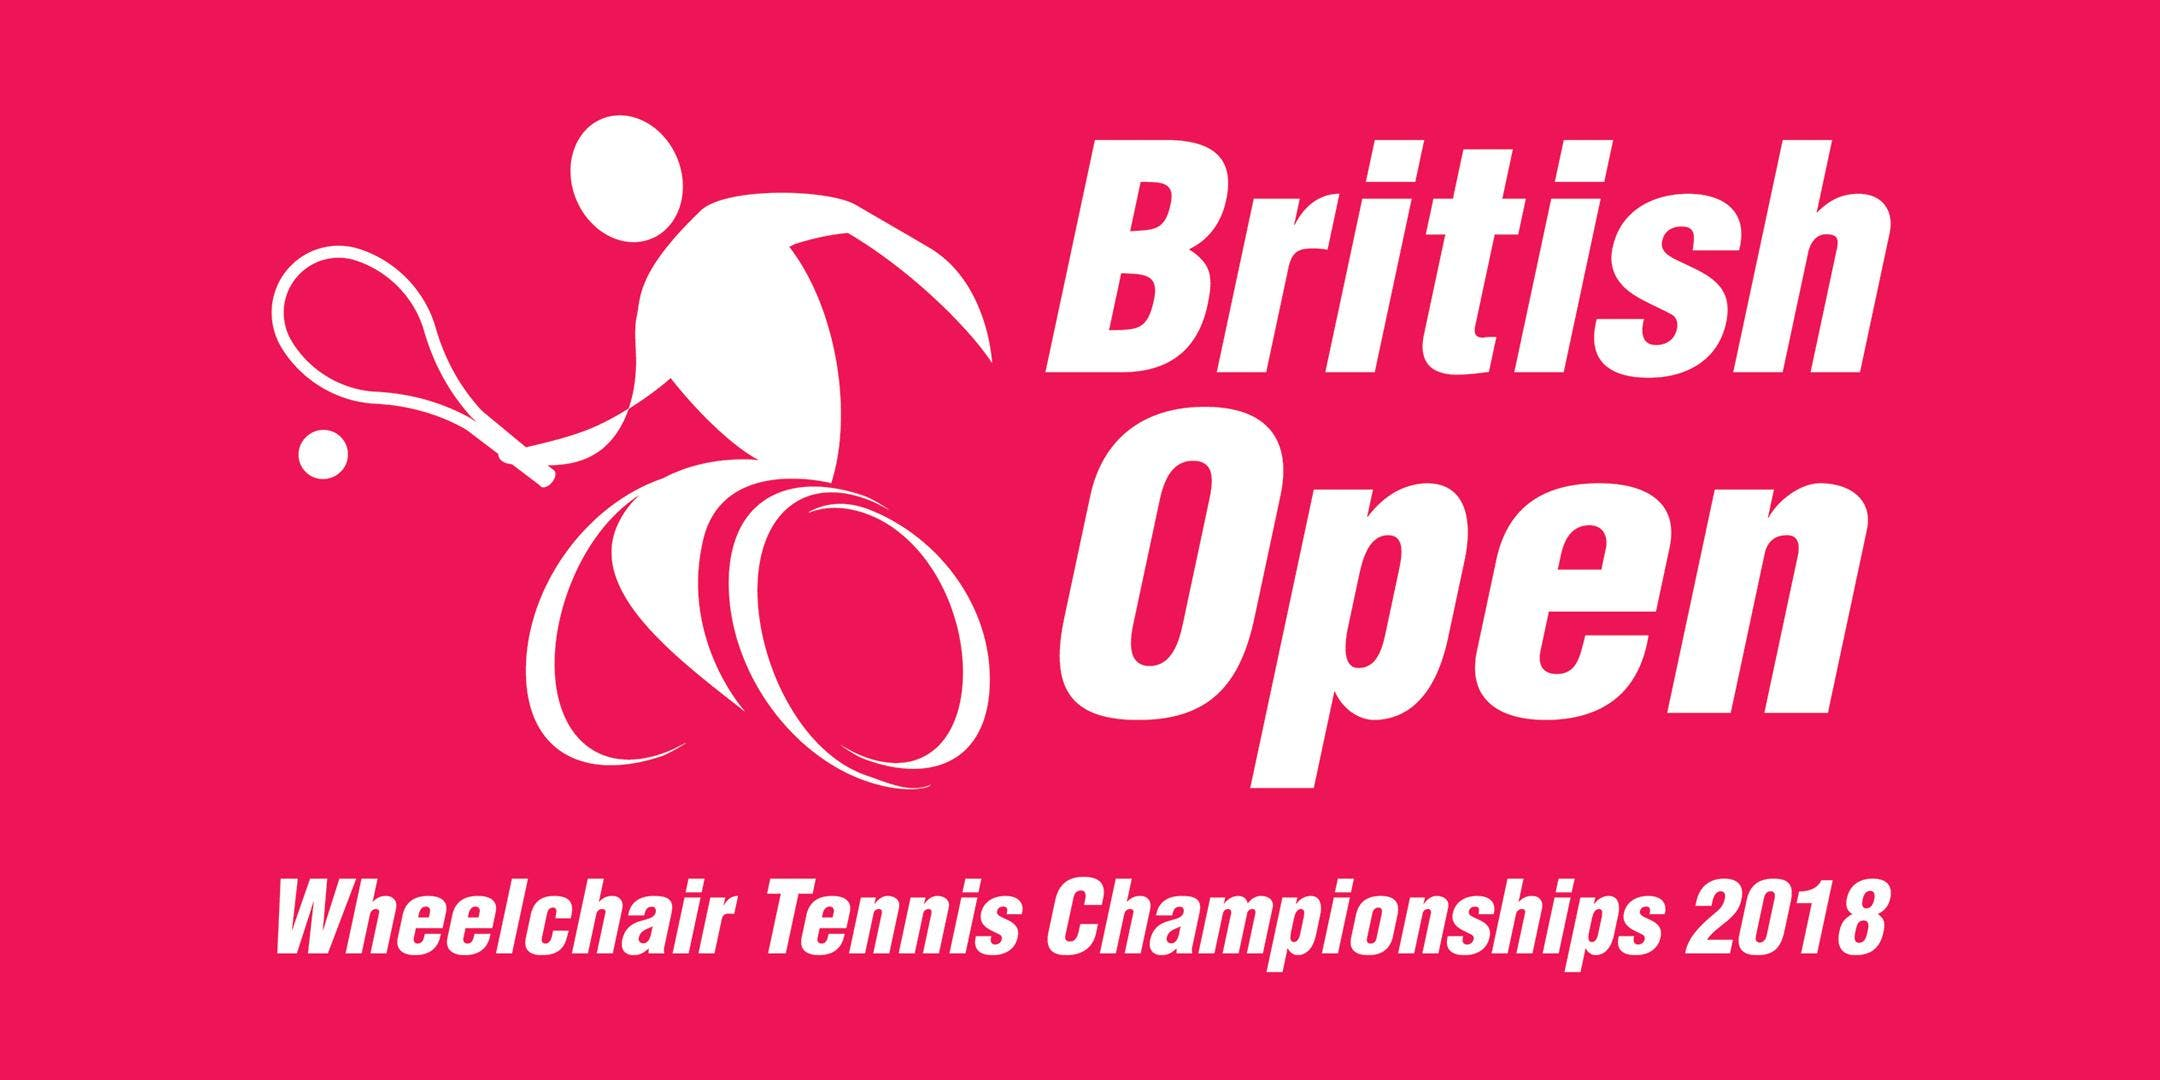 British Open Wheelchair Tennis Championships